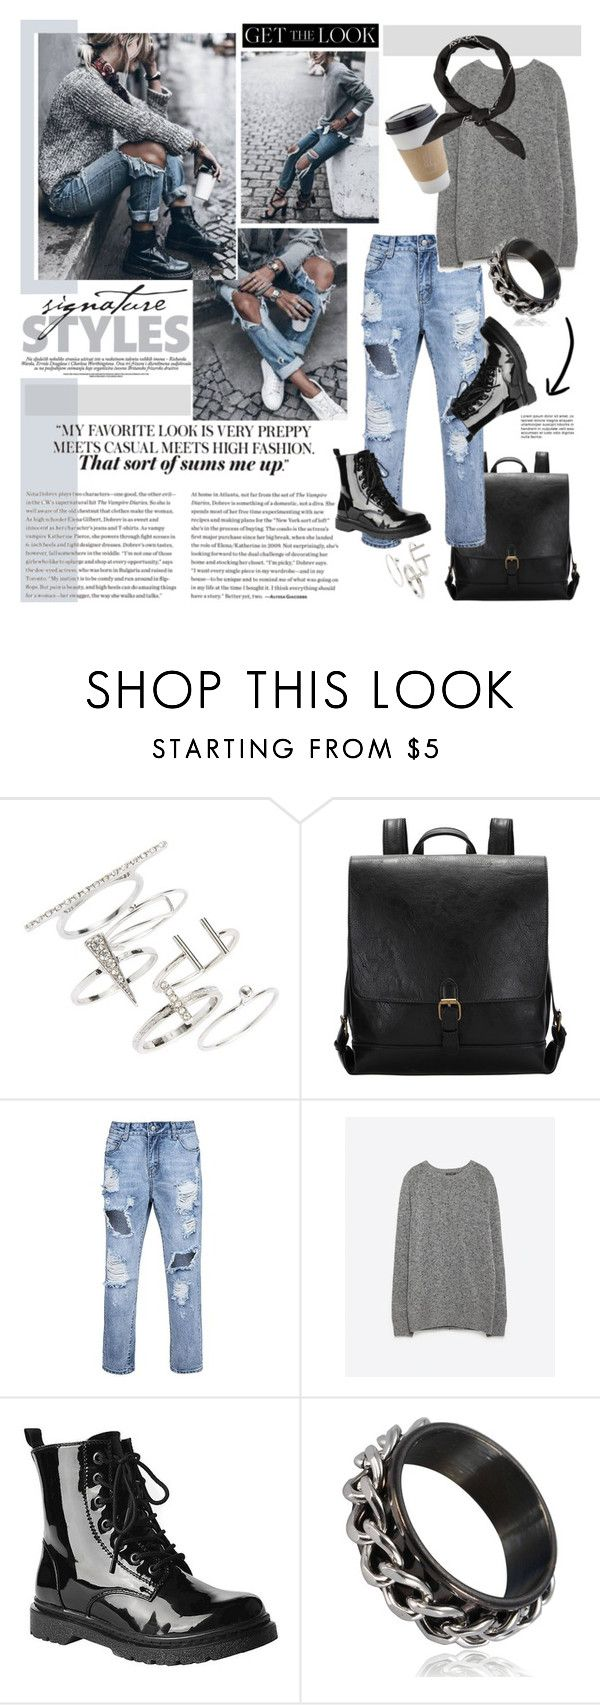 """Weekend Style"" by barngirl ❤ liked on Polyvore featuring Topshop, Zara, OUTRAGE and Gia-Mia"